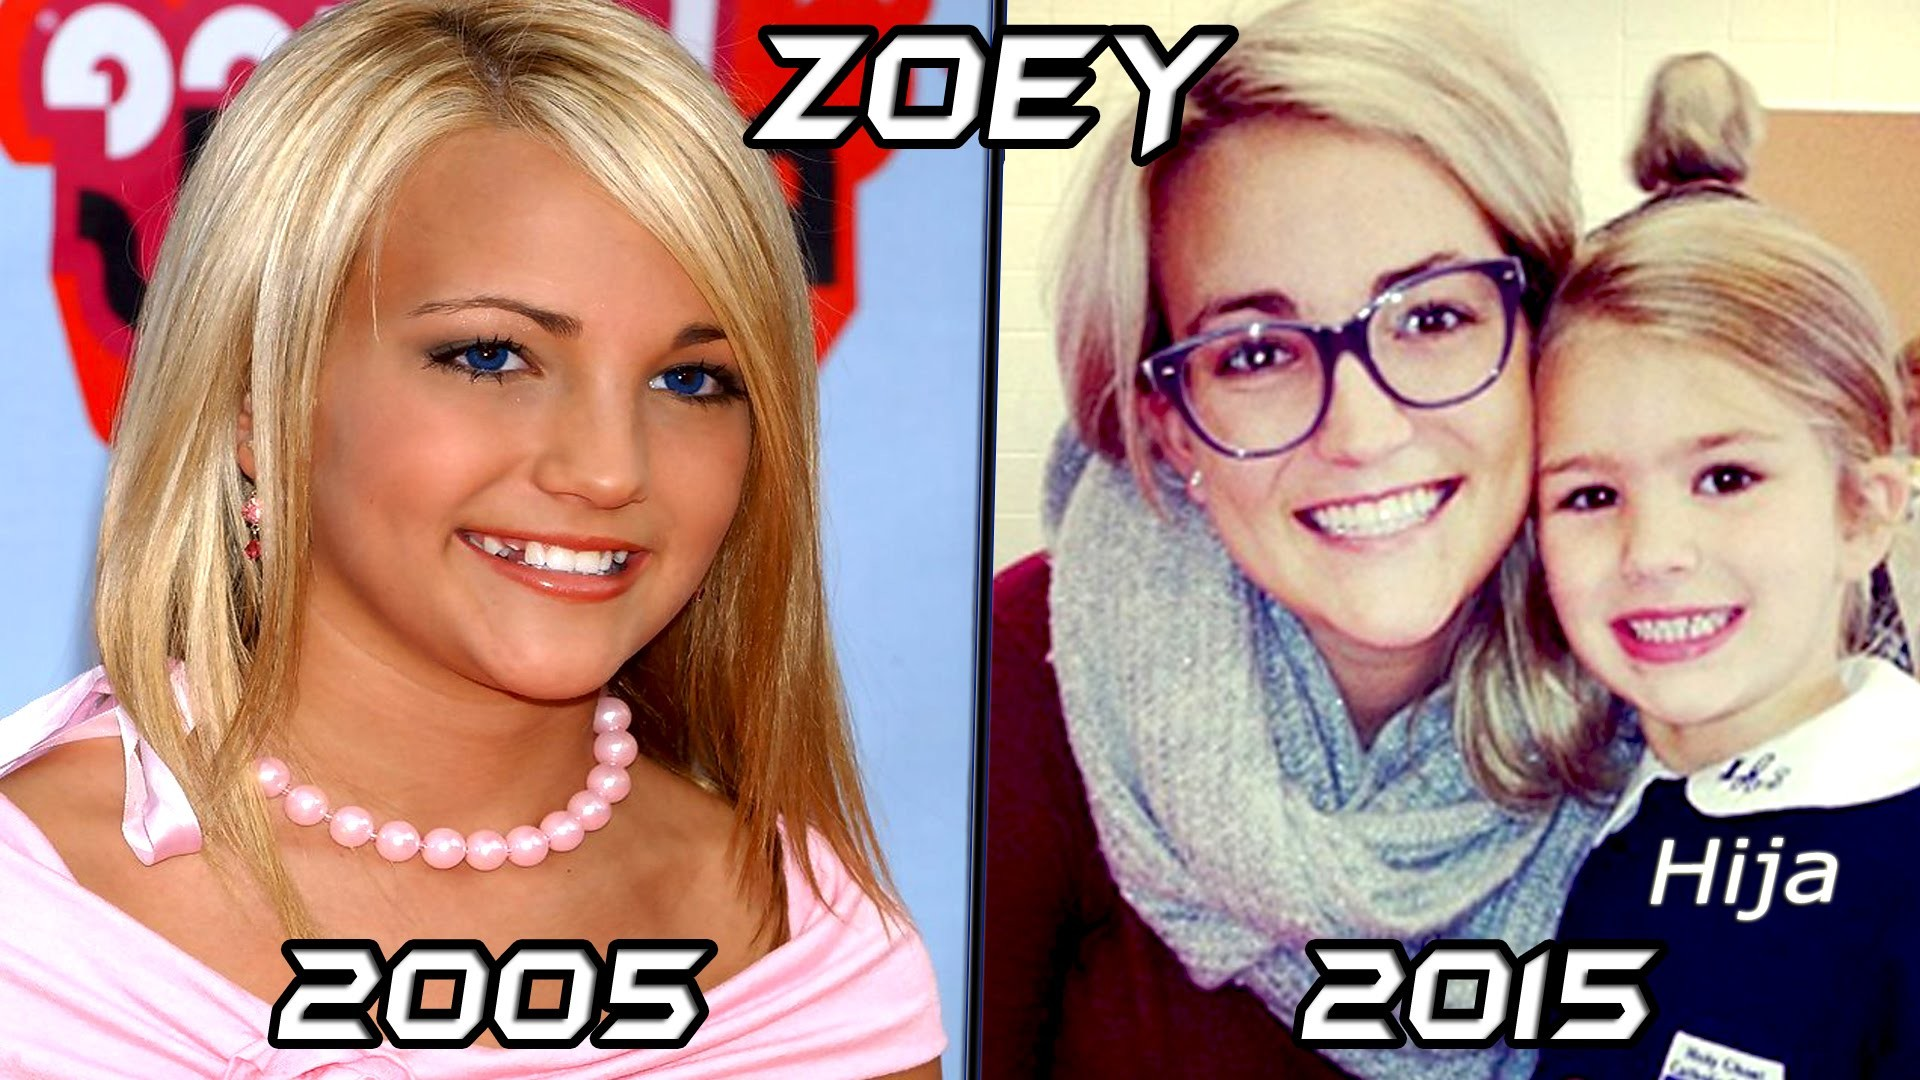 Zoey From Zoey 101 Then And Now 2015